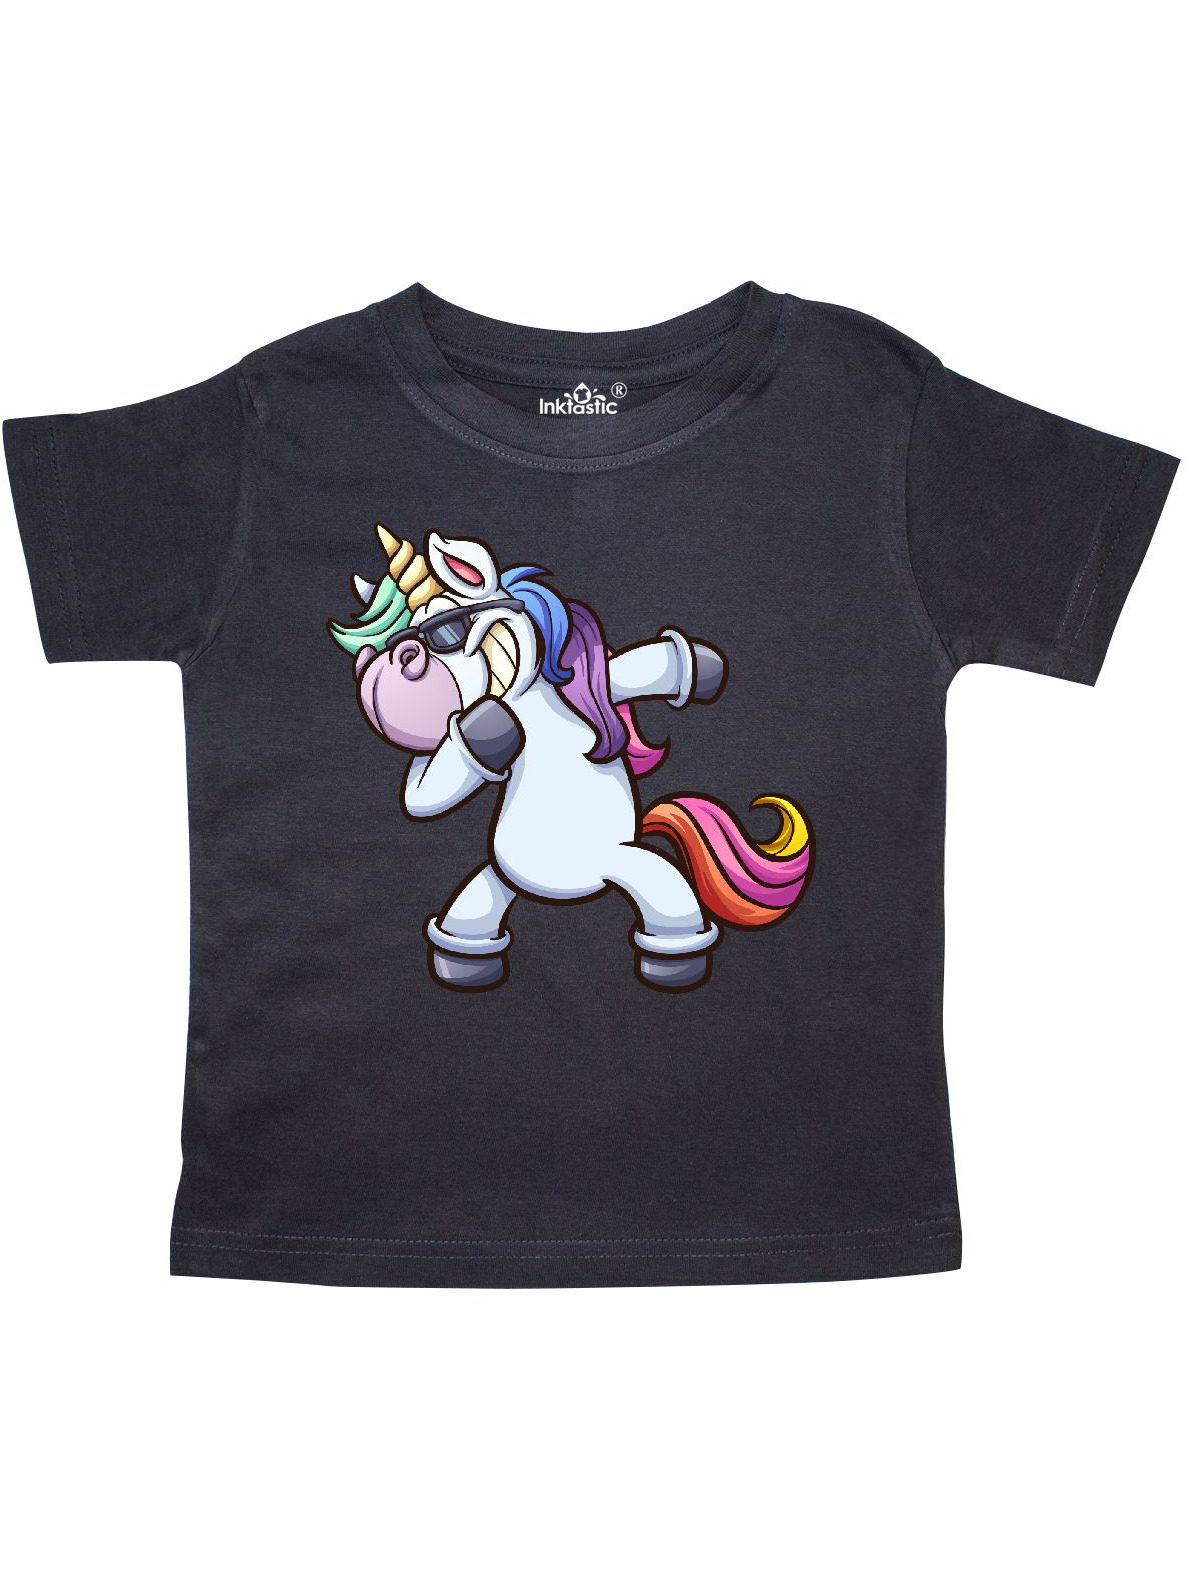 Dabbing Unicorn Toddler T-Shirt